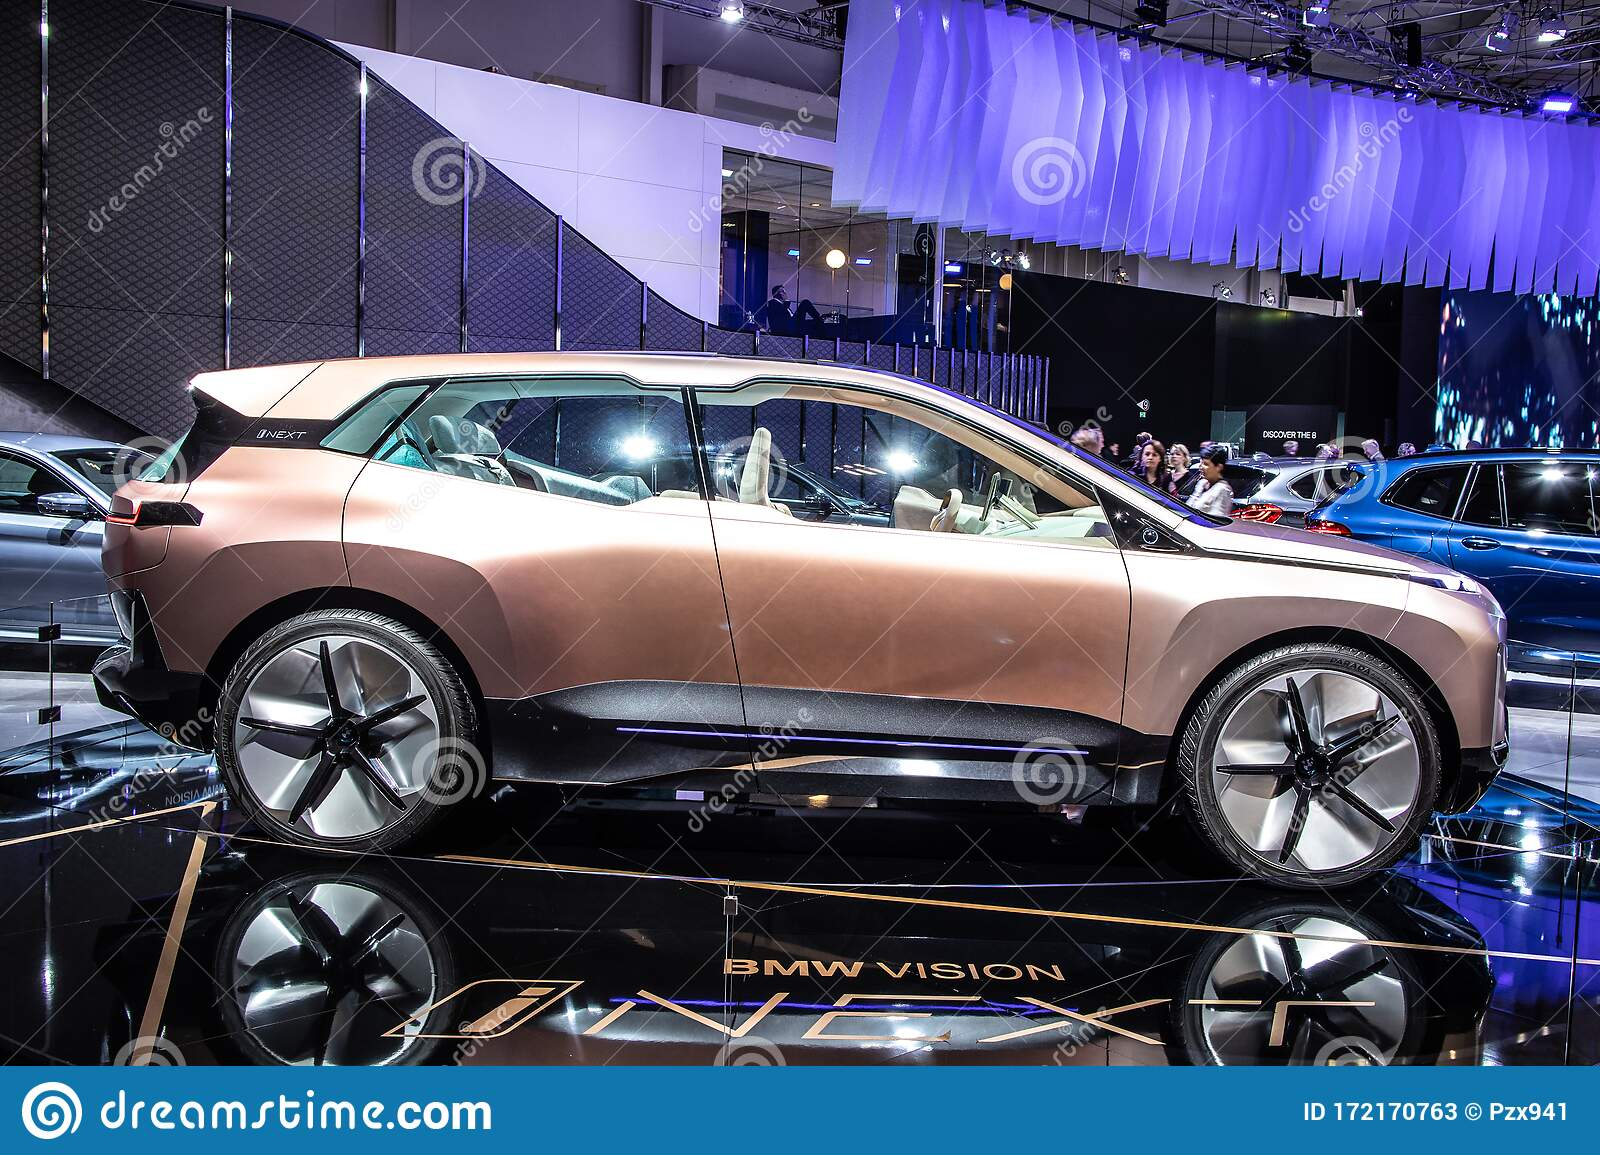 BMW Vision INEXT Concept Prototype Car, Brussels Motor ...